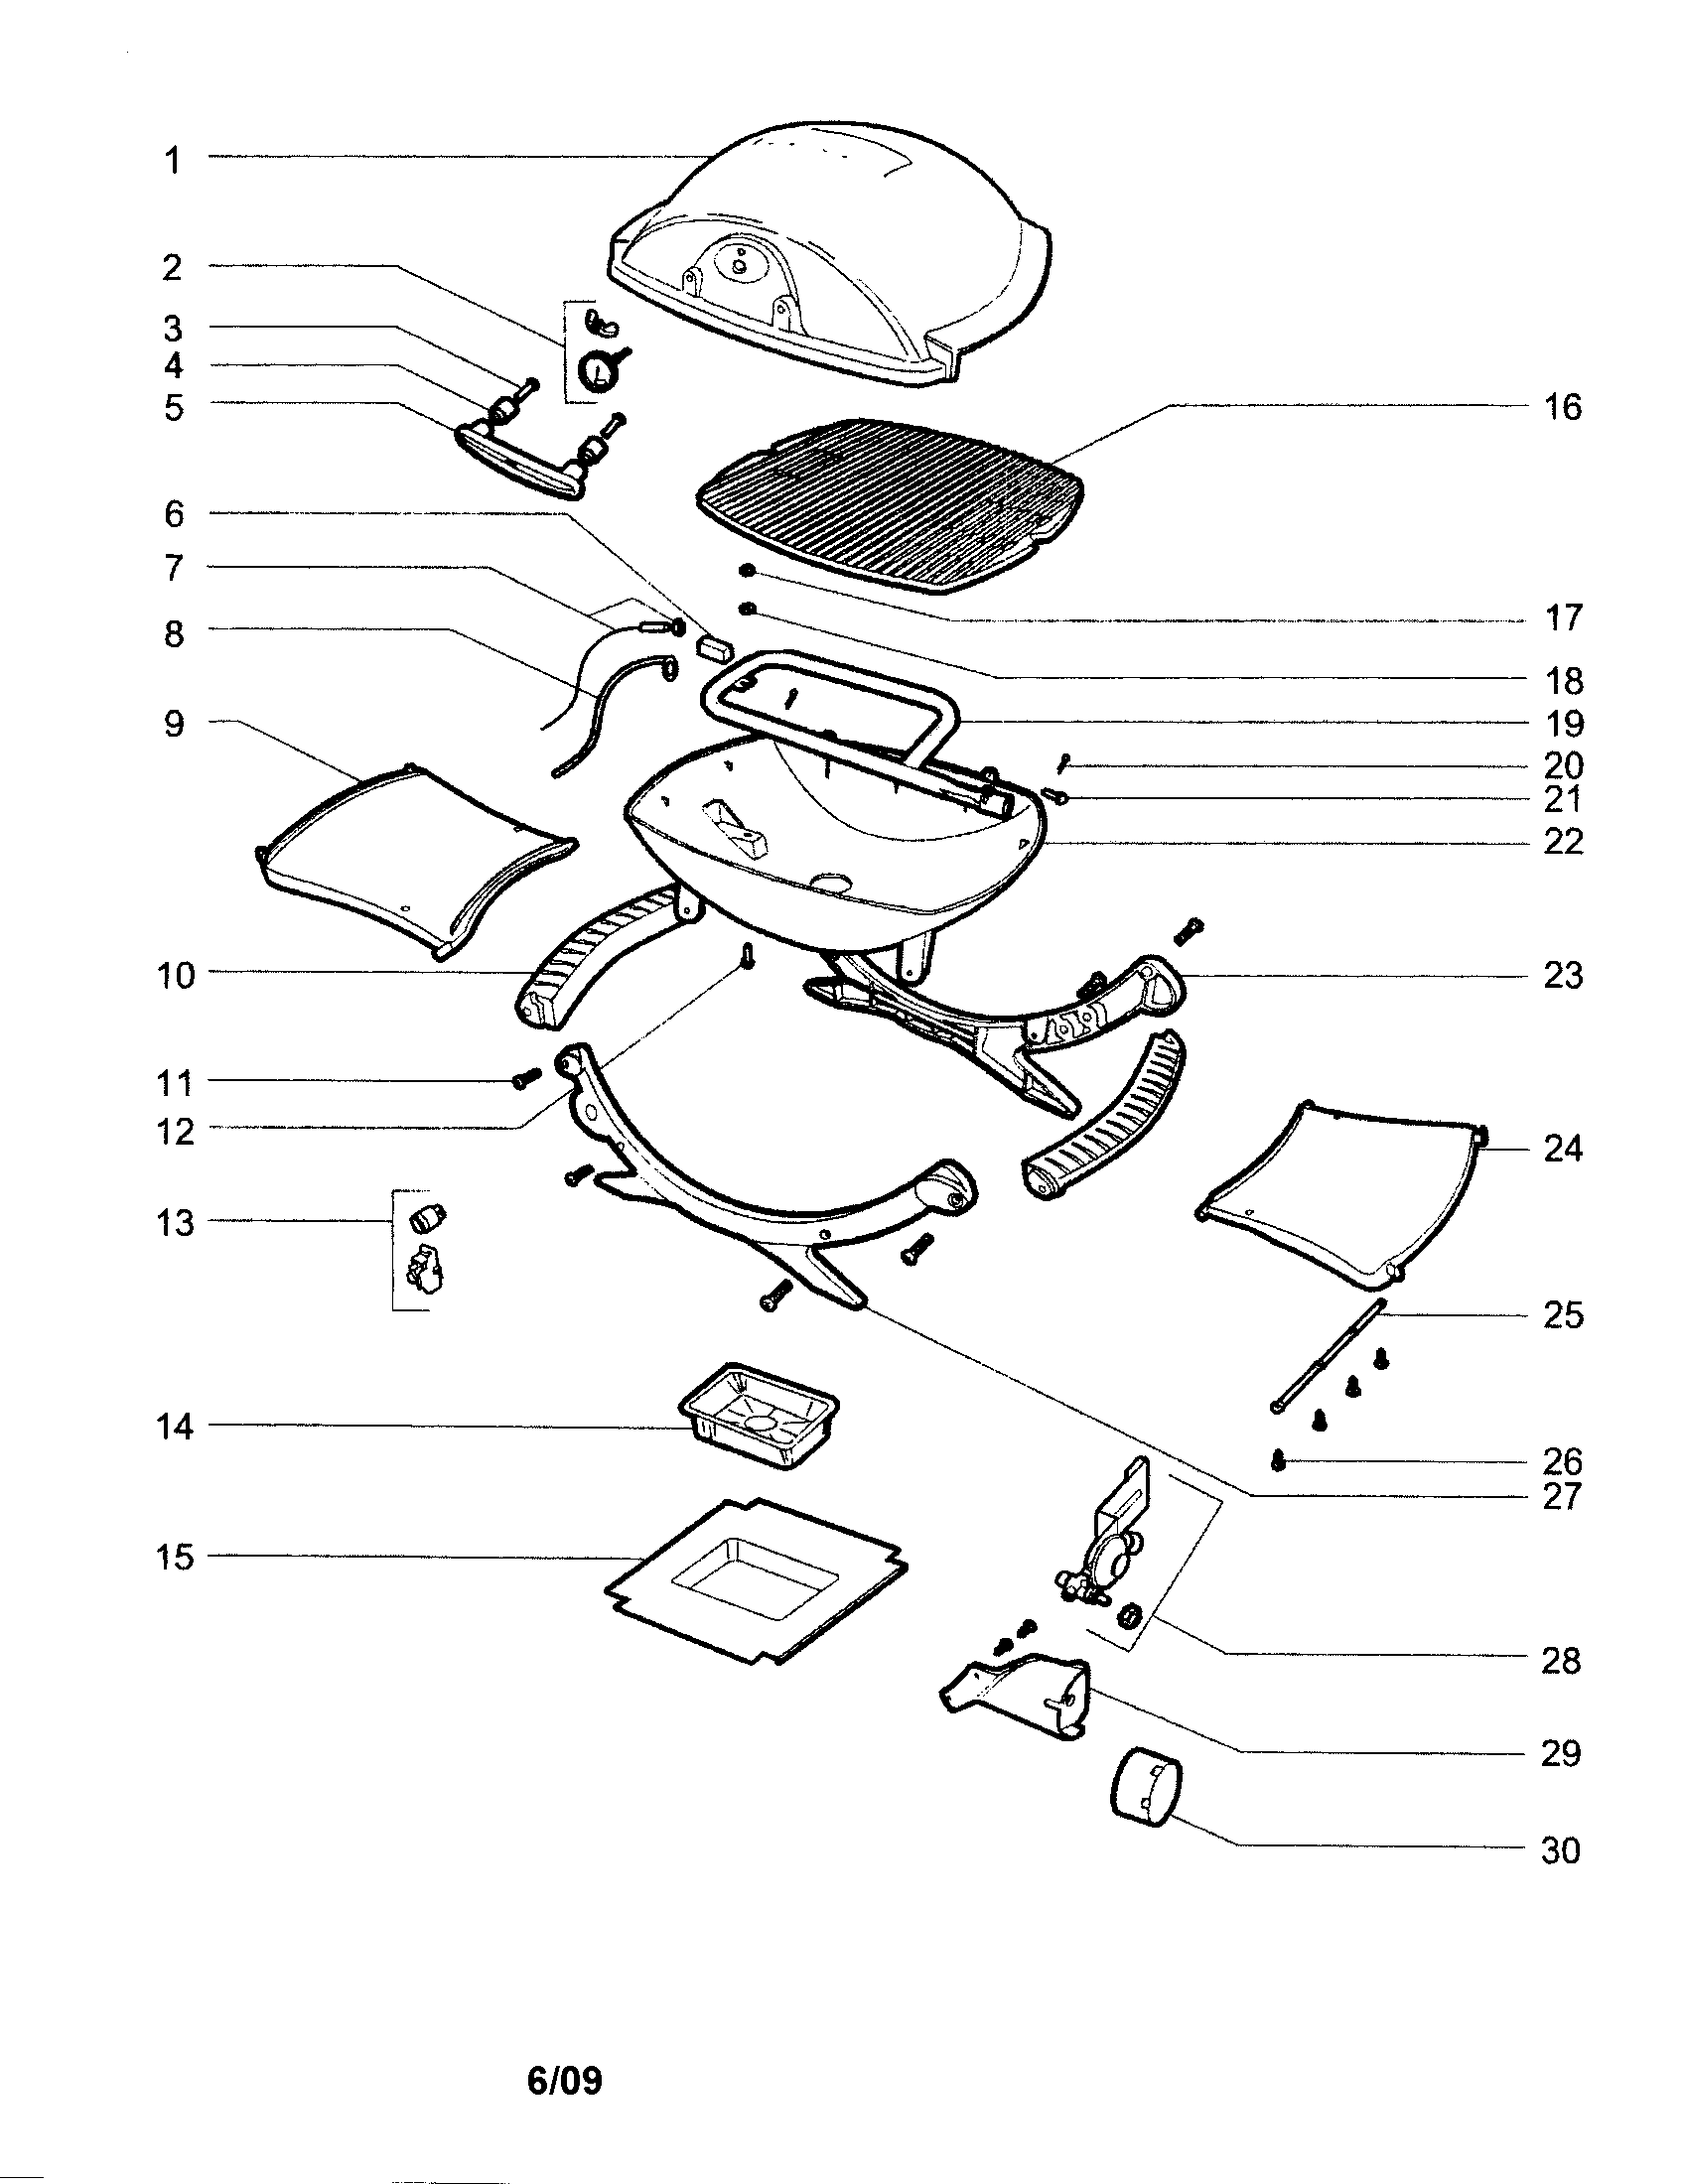 Weber Baby Q Parts Manual